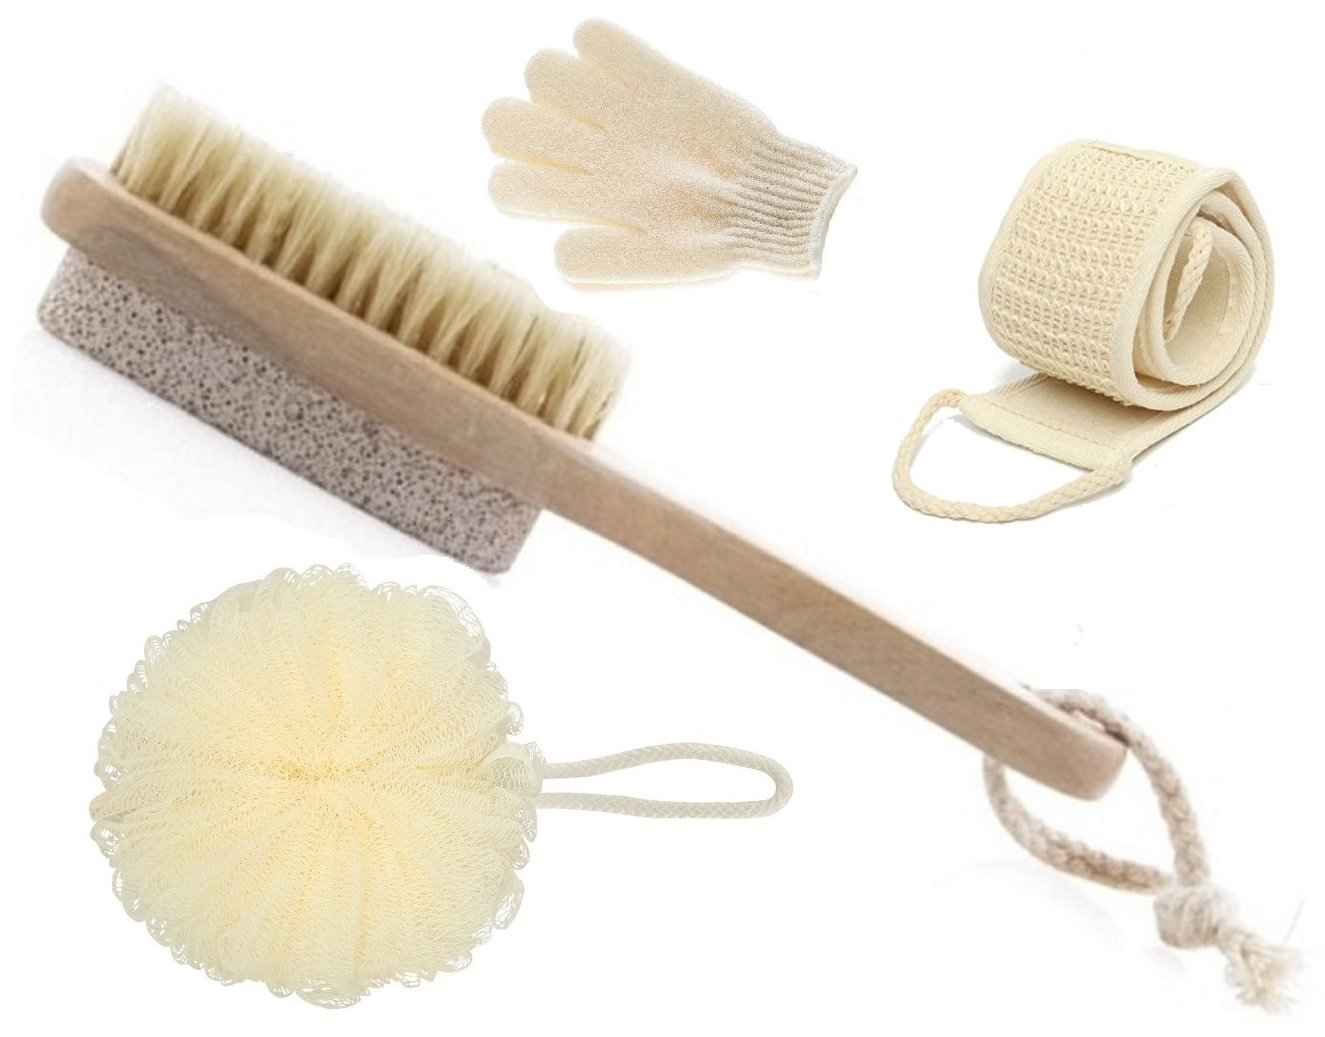 OLIVIA & AIDEN Bath Brush Set - Includes Short Handled Bath Brush and Pumice Stone, Loofah Back Scrubber, Exfoliating Bath Gloves and Bath Pouf - The Ultimate Home Spa Set